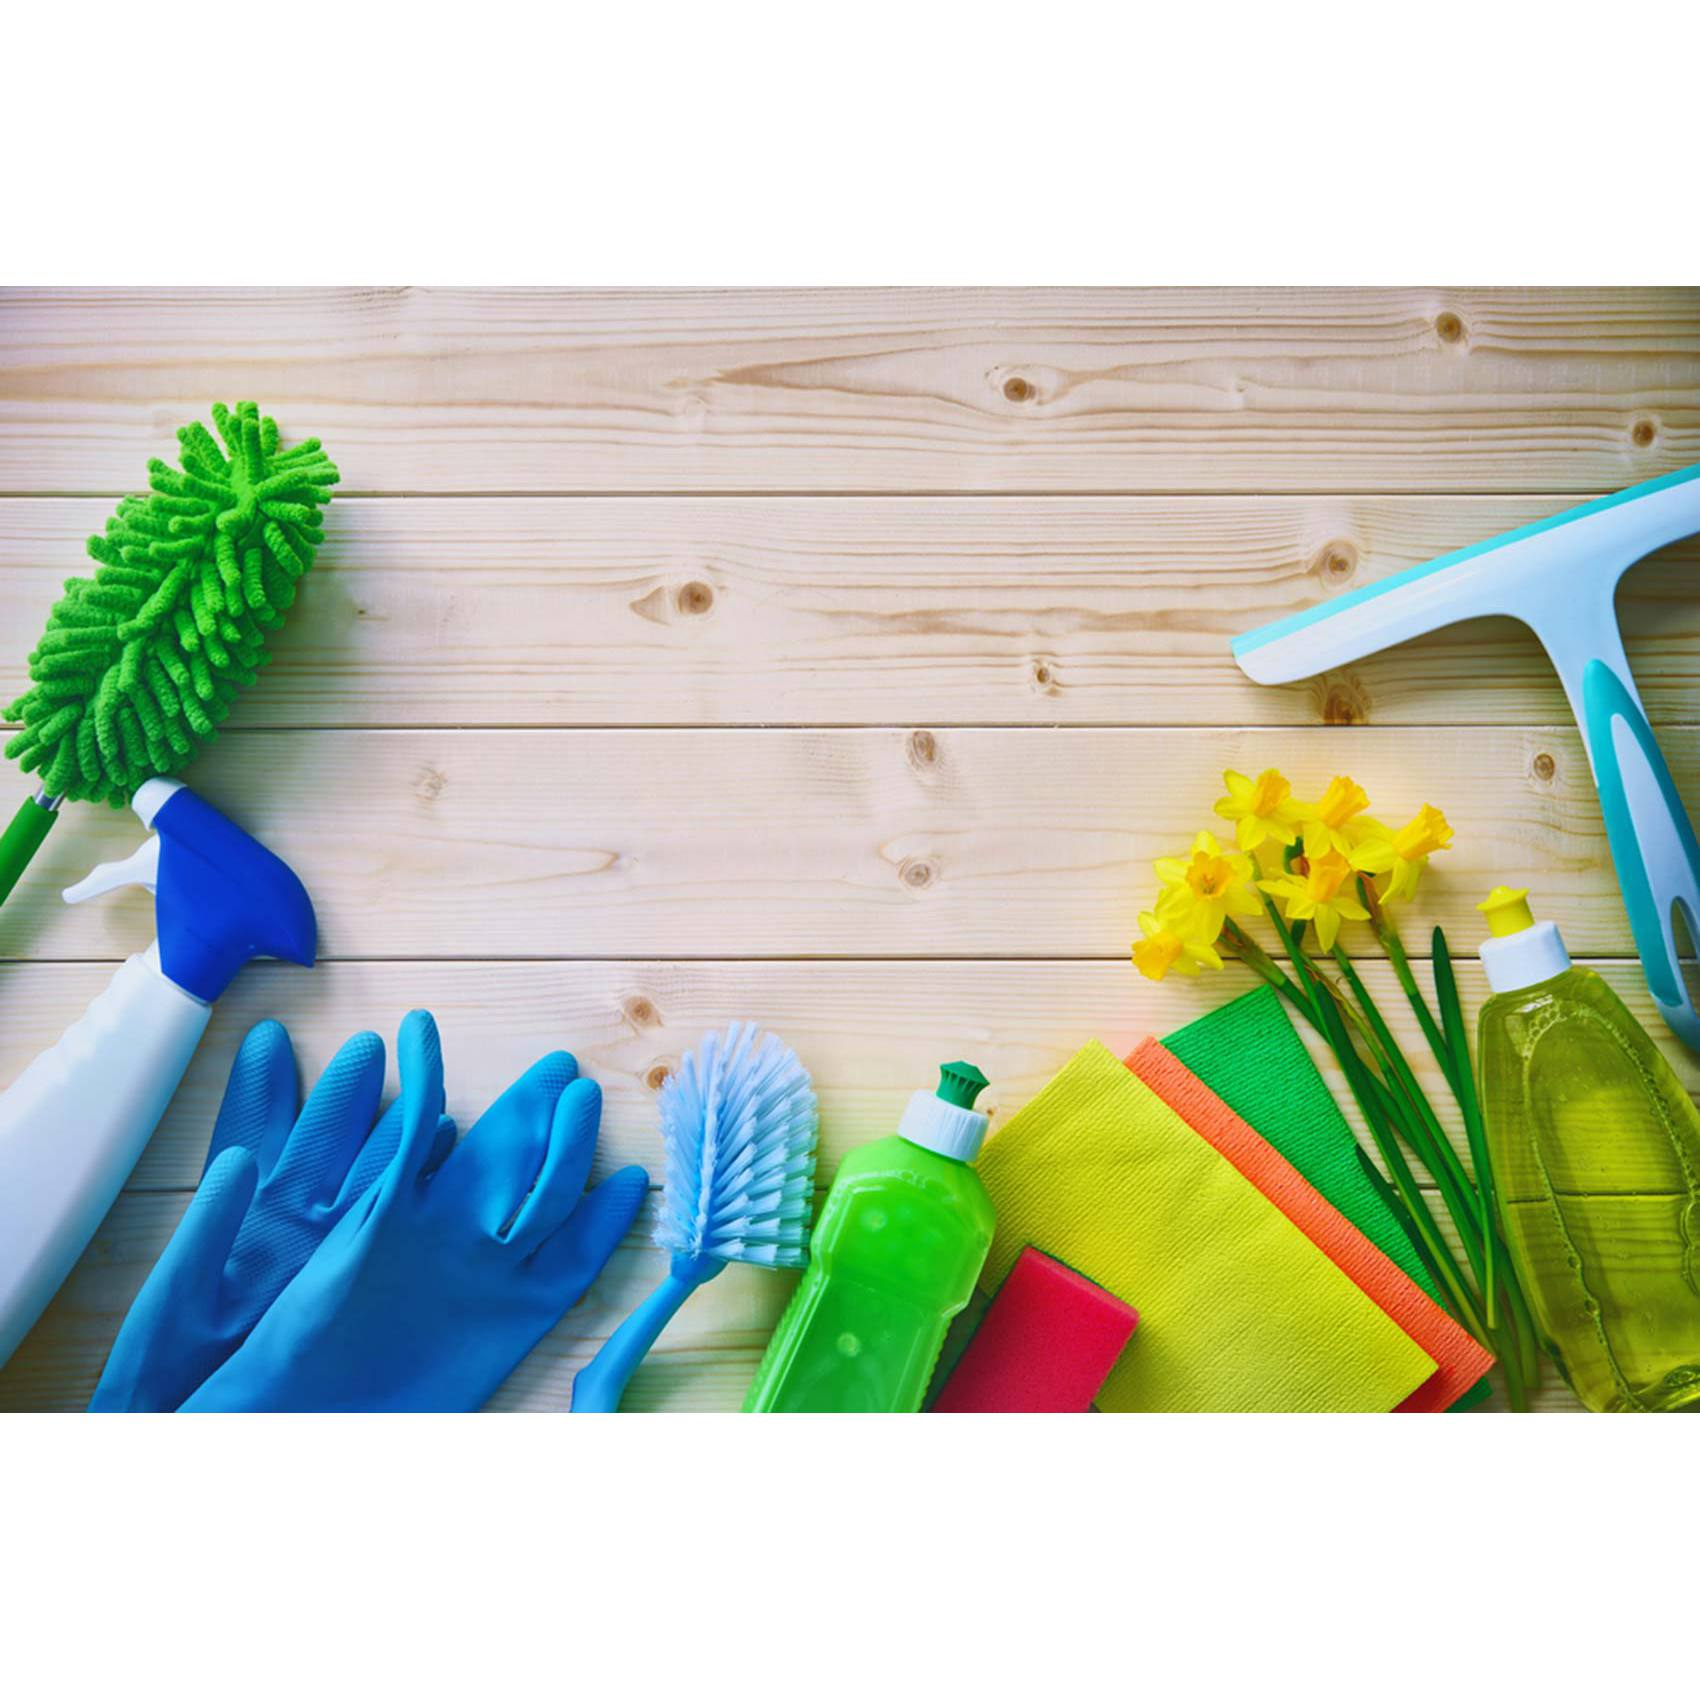 Katy House Cleaning Services